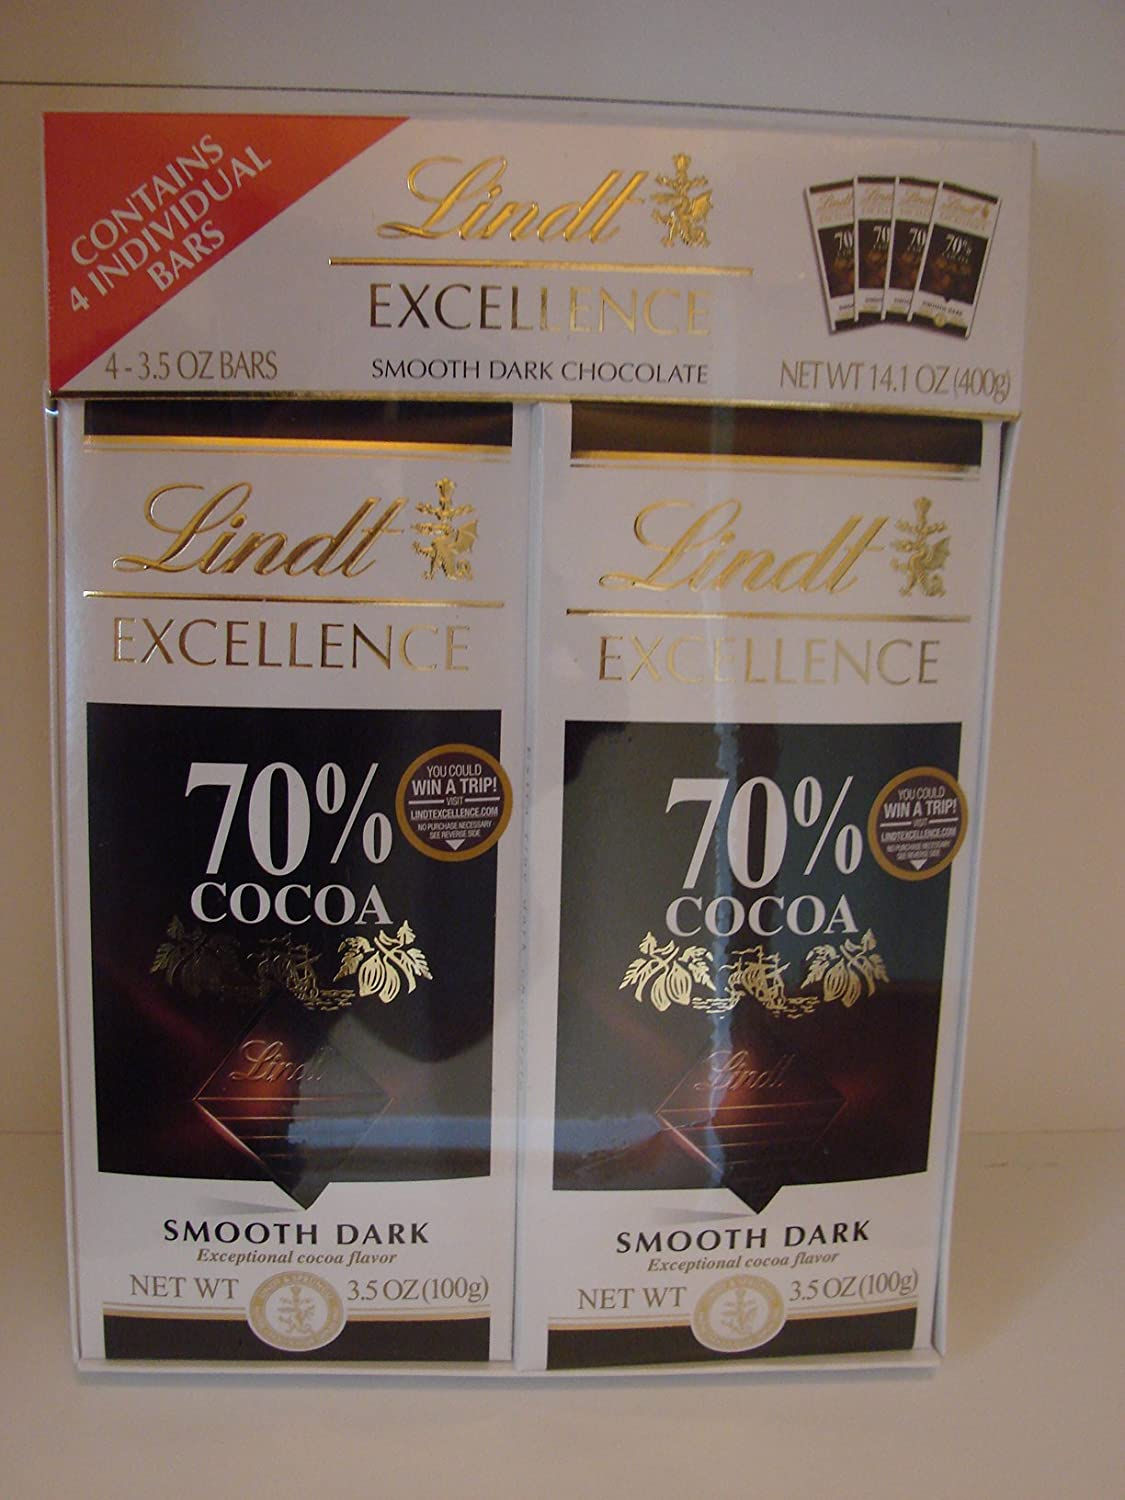 Amazon.com : Lindt Excellence Smooth Dark Chocolate 70% Cocoa Bars ...